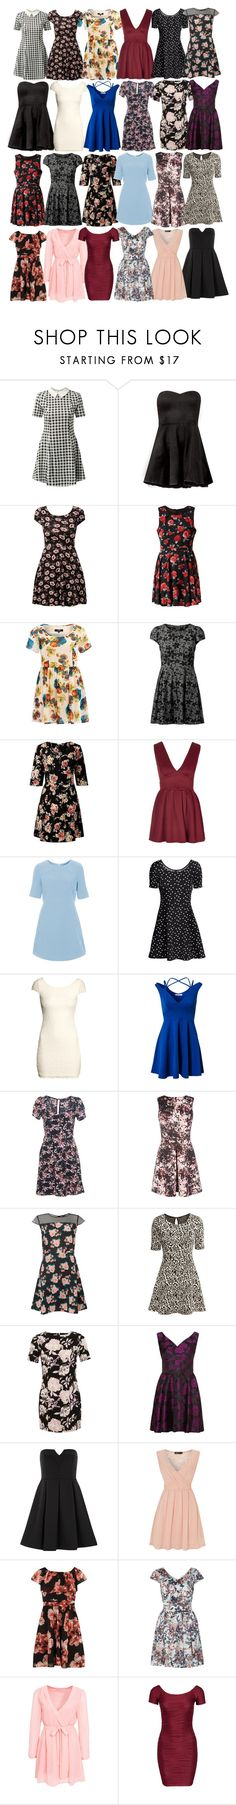 """Lydia Inspired UK Friendly Dresses"" by veterization ❤ liked on Polyvore featuring Cameo Rose, AX Paris, Mela Loves London, Koko, Poppy Lux, Rare London, Topshop, H&M, Miss Selfridge and Warehouse"